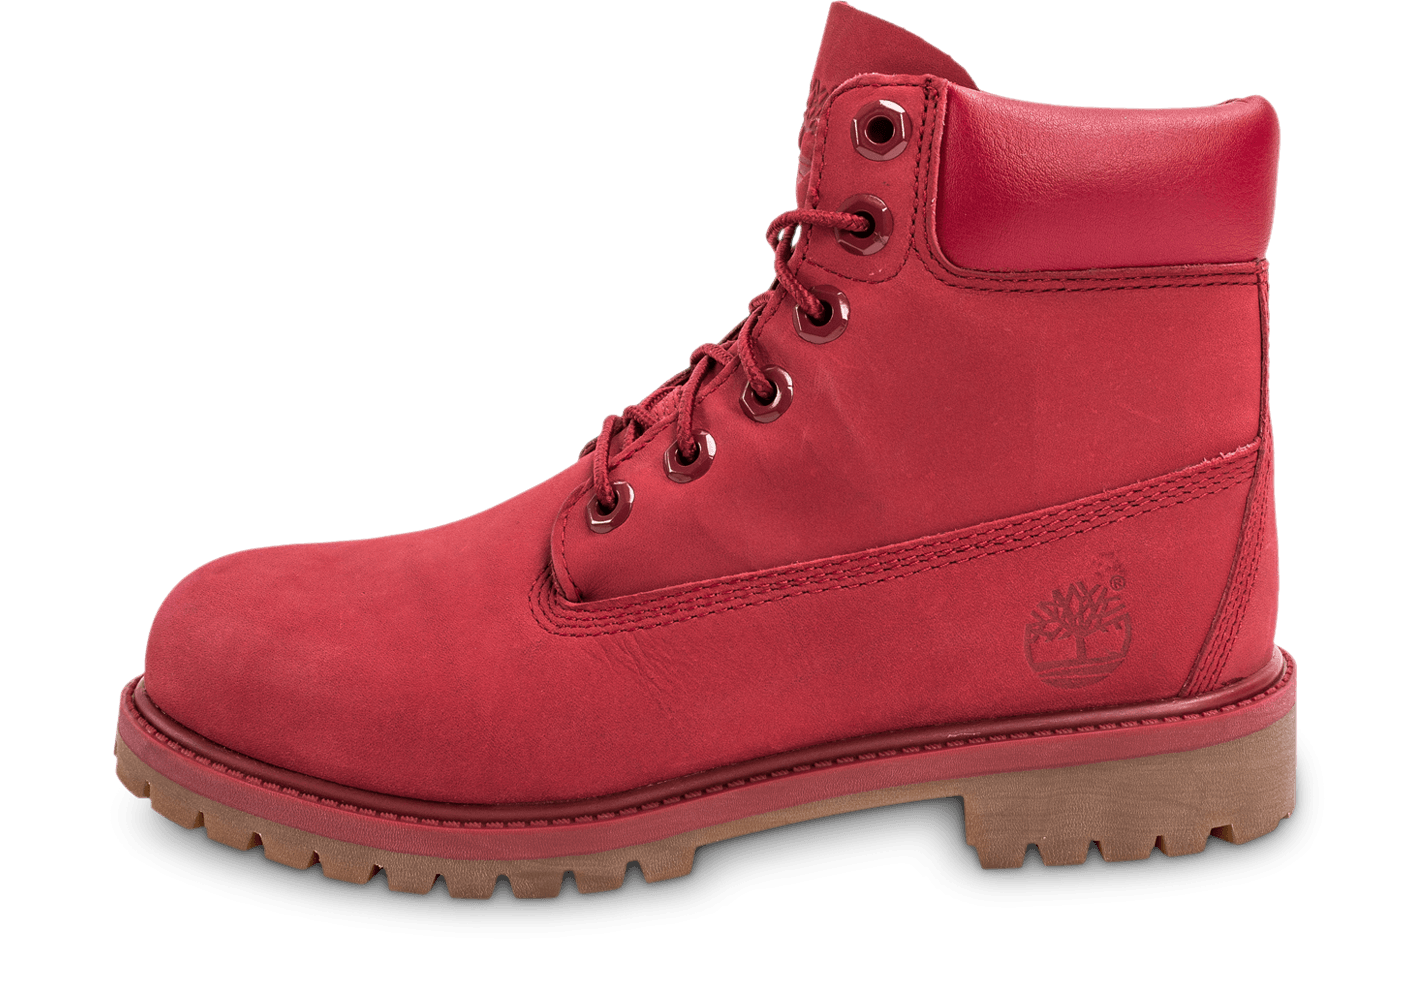 timberland 6 inch premium wp boot junior rouge chaussures femme chausport. Black Bedroom Furniture Sets. Home Design Ideas